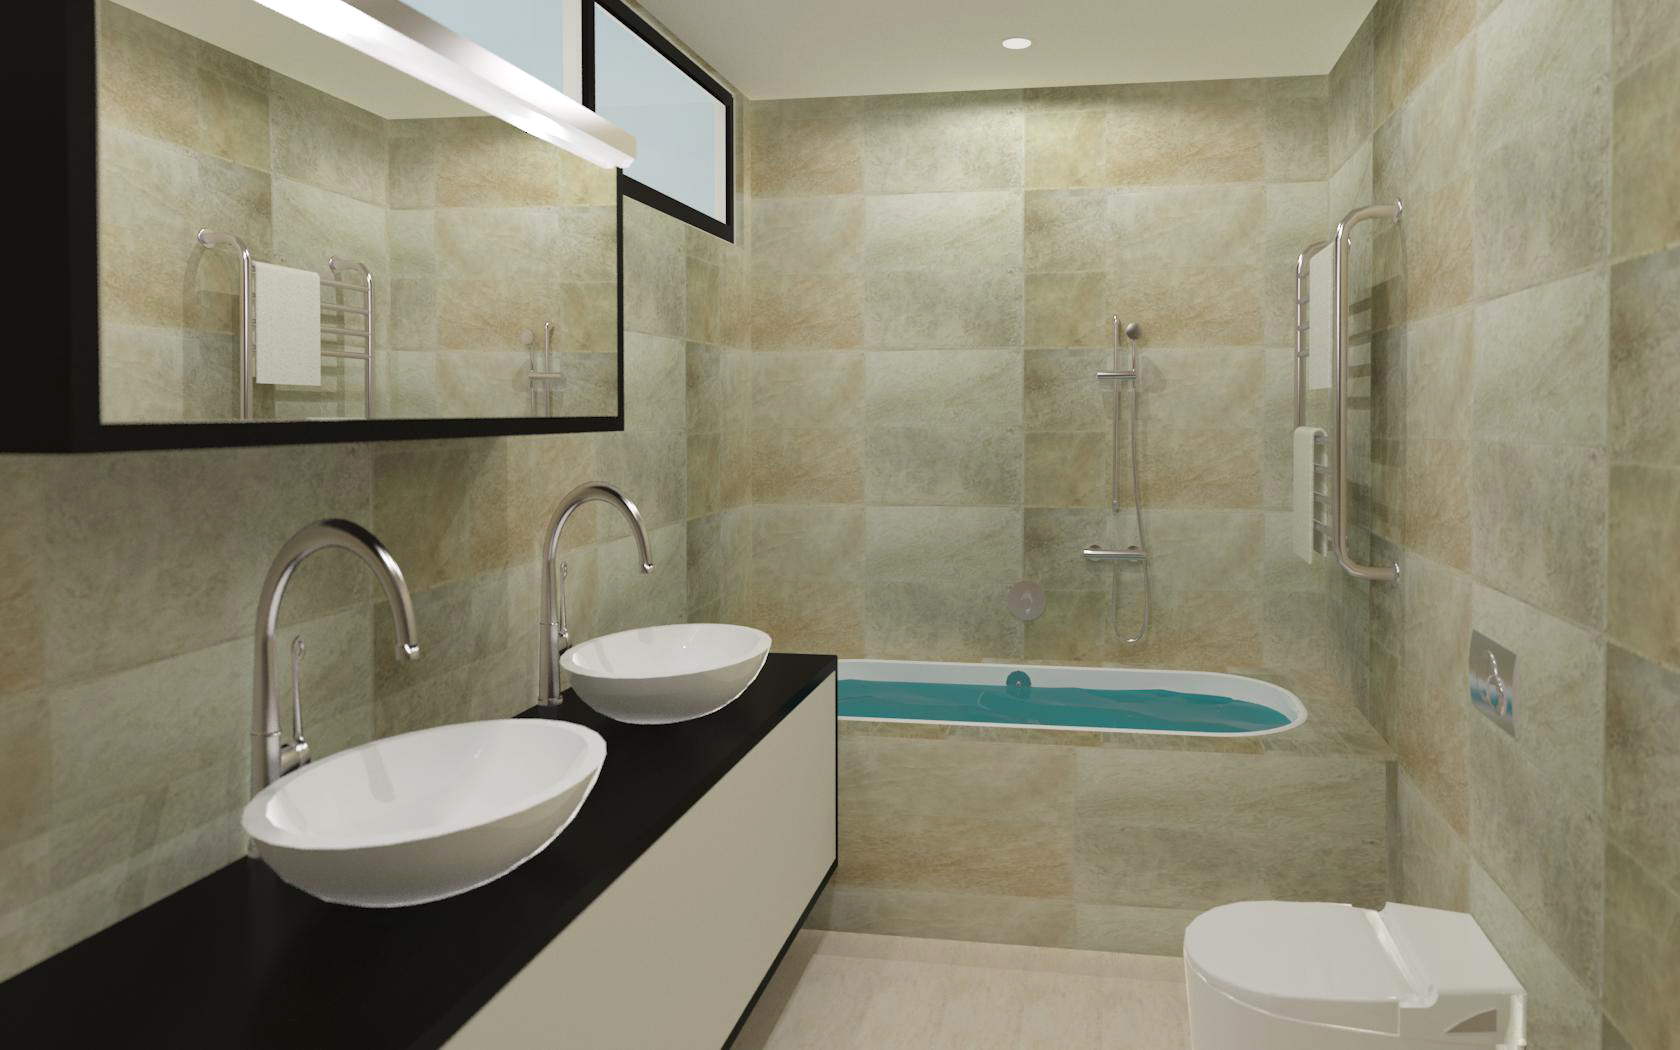 Home design consulting of winchester ma receives best of for Bathroom design consultant